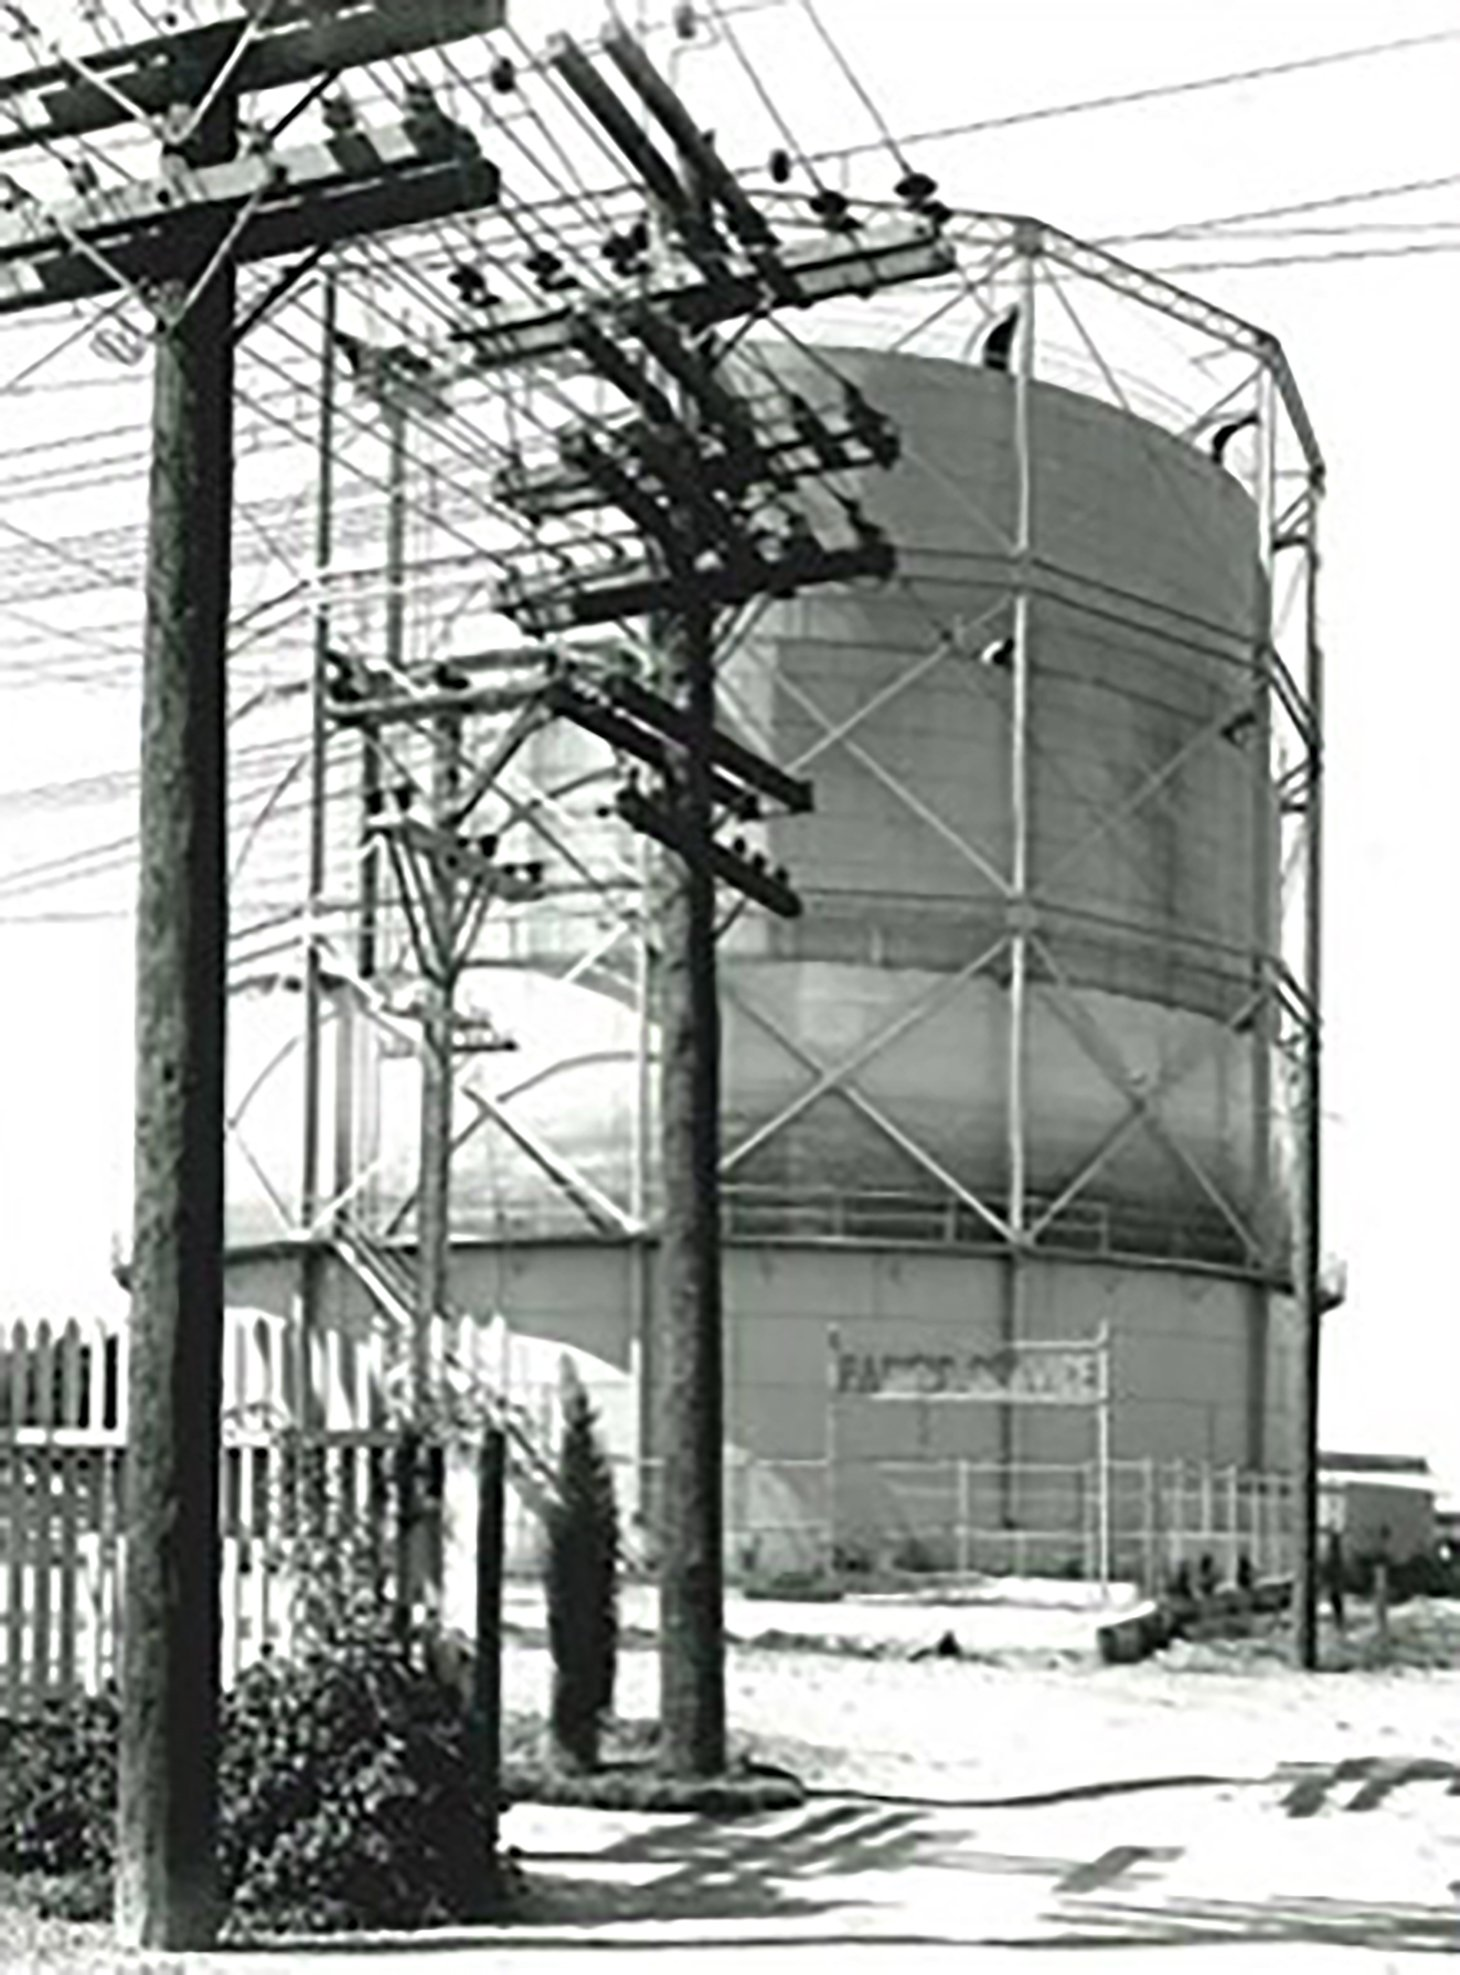 Historic Redwood City gas holder in the early 1900s.